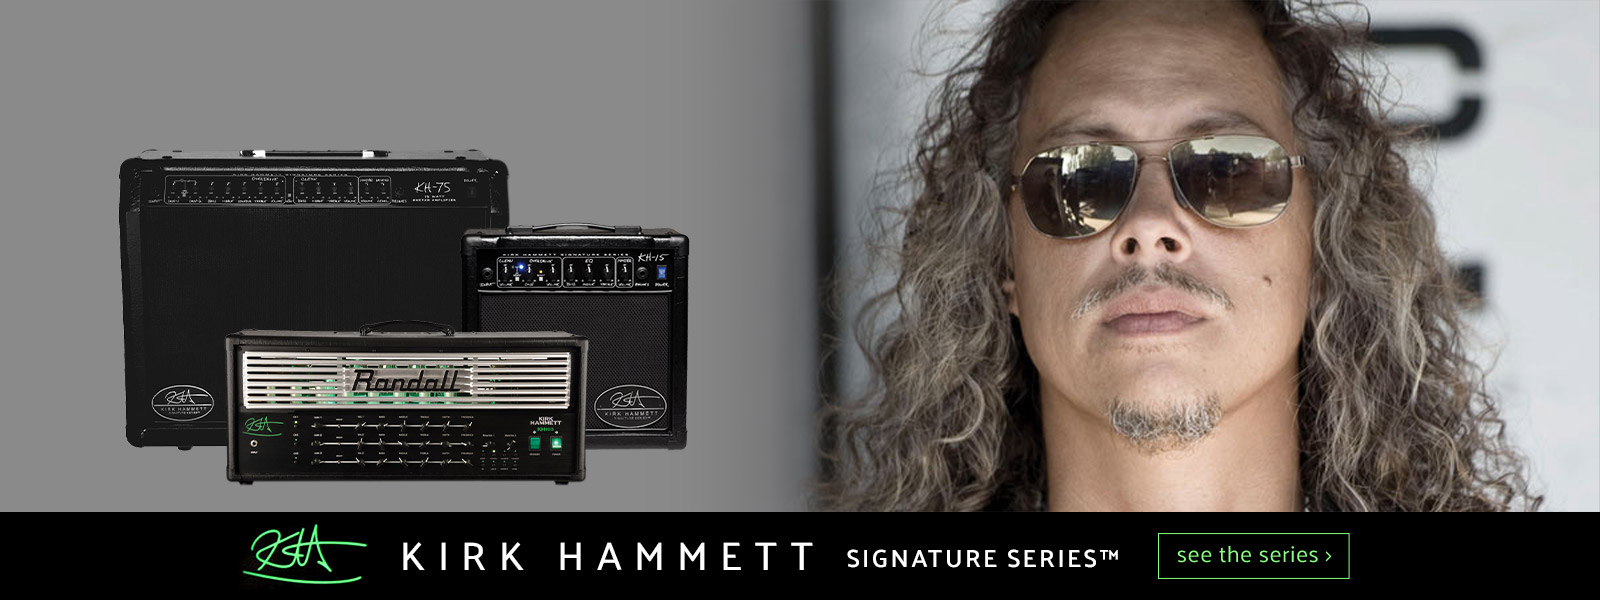 partial view of Kirk Hammett's face next to 3 of his signature Randall amplifiers